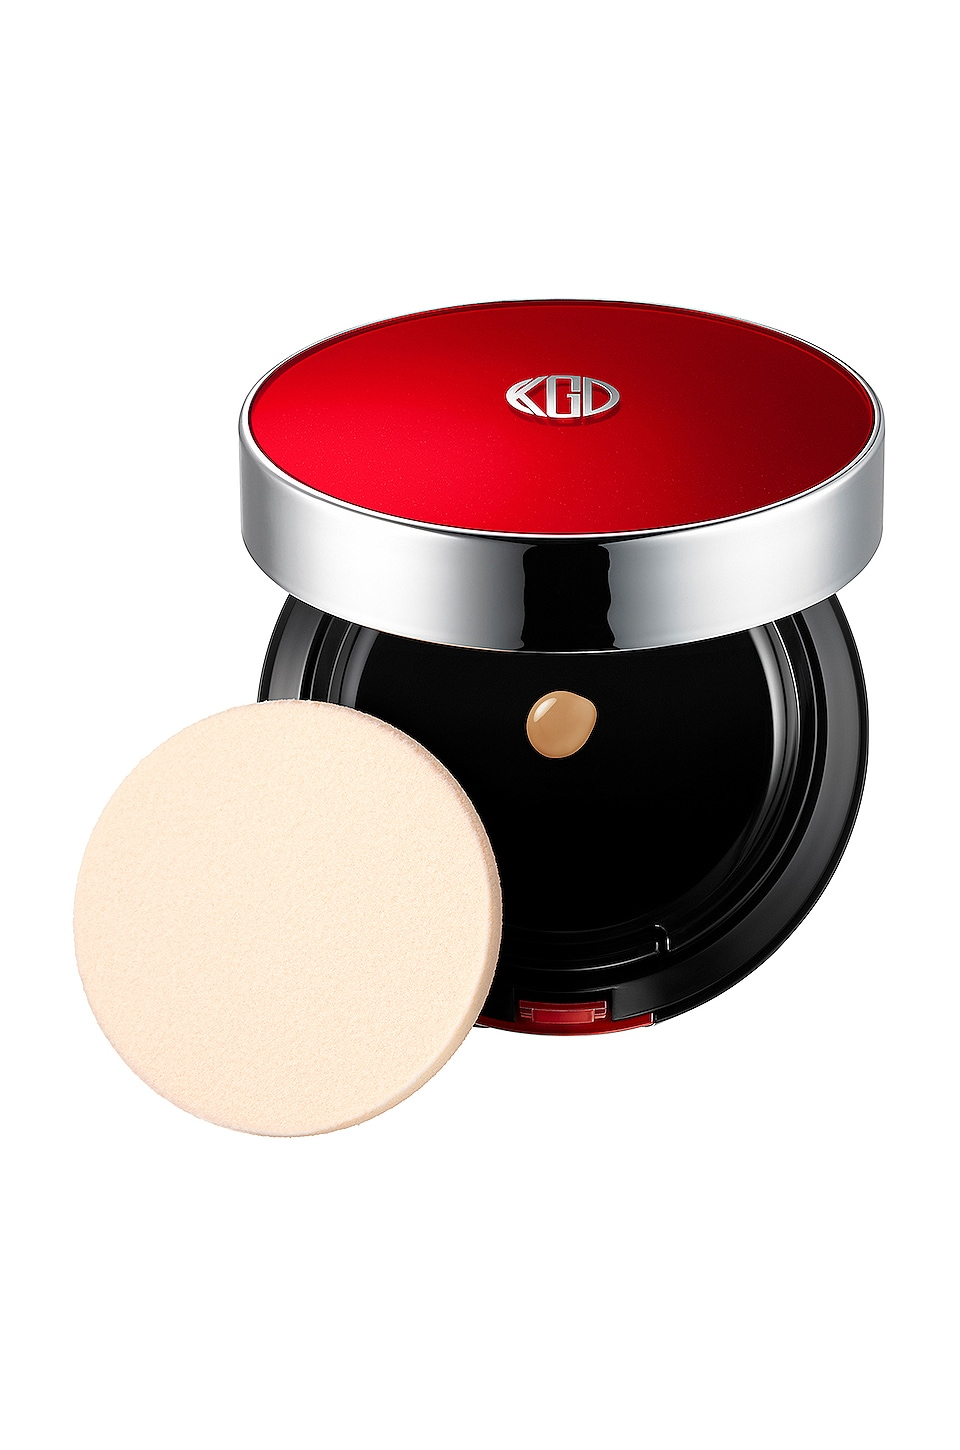 Koh Gen Do Maifanshi Aqua Foundation Compact in Warm 143